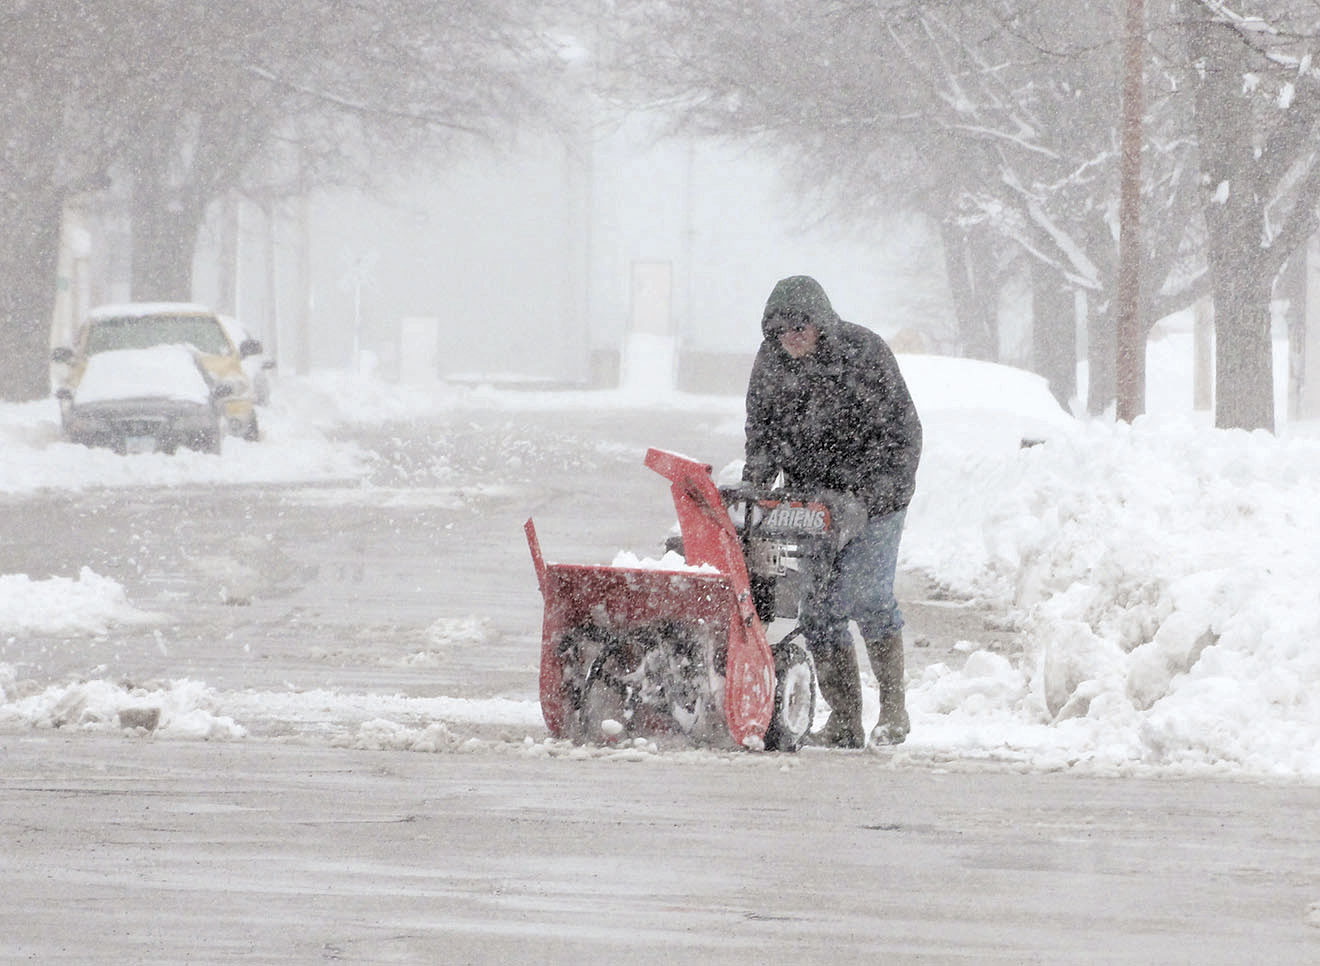 March mayhem: Storm drops 14 inches of snow on Charles City